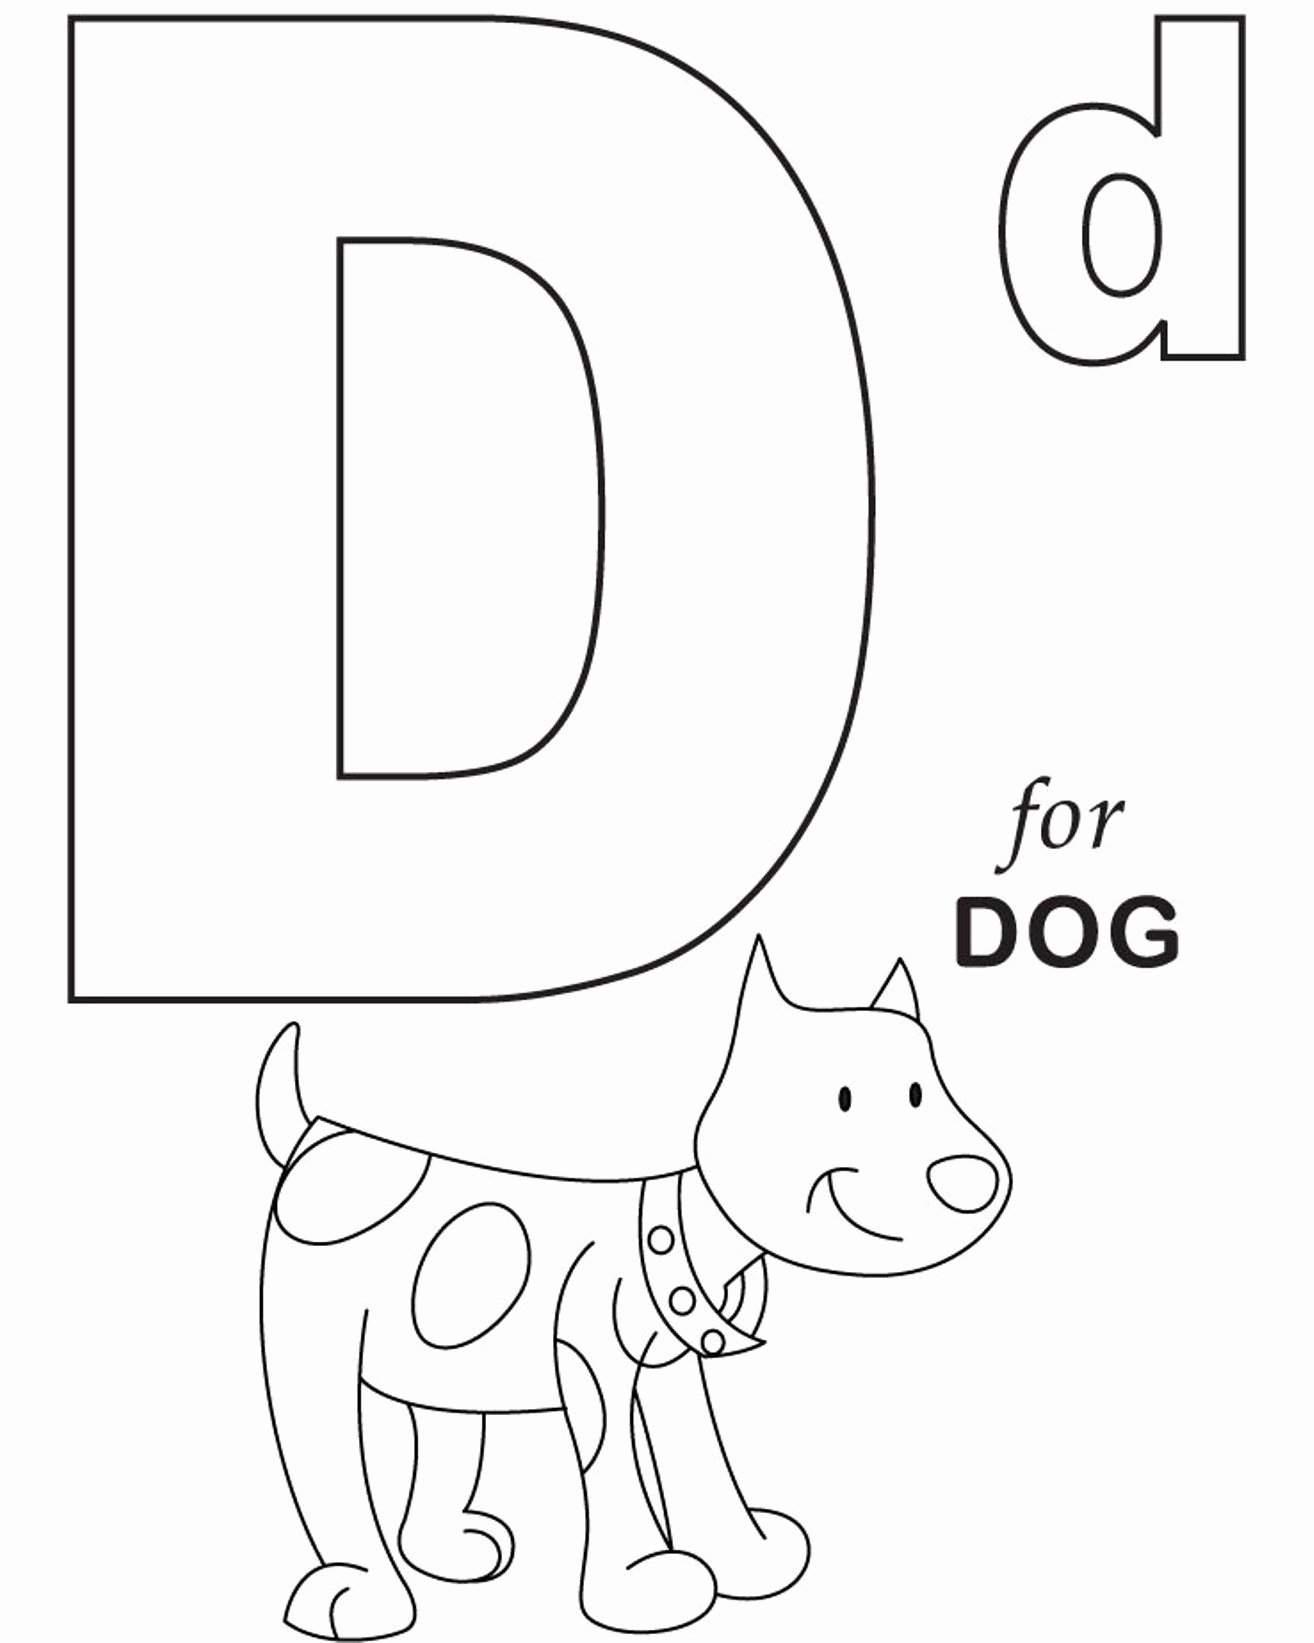 Dog Worksheets for Preschoolers Awesome Worksheets Alphabet Coloring for Dog Printable Tracing the